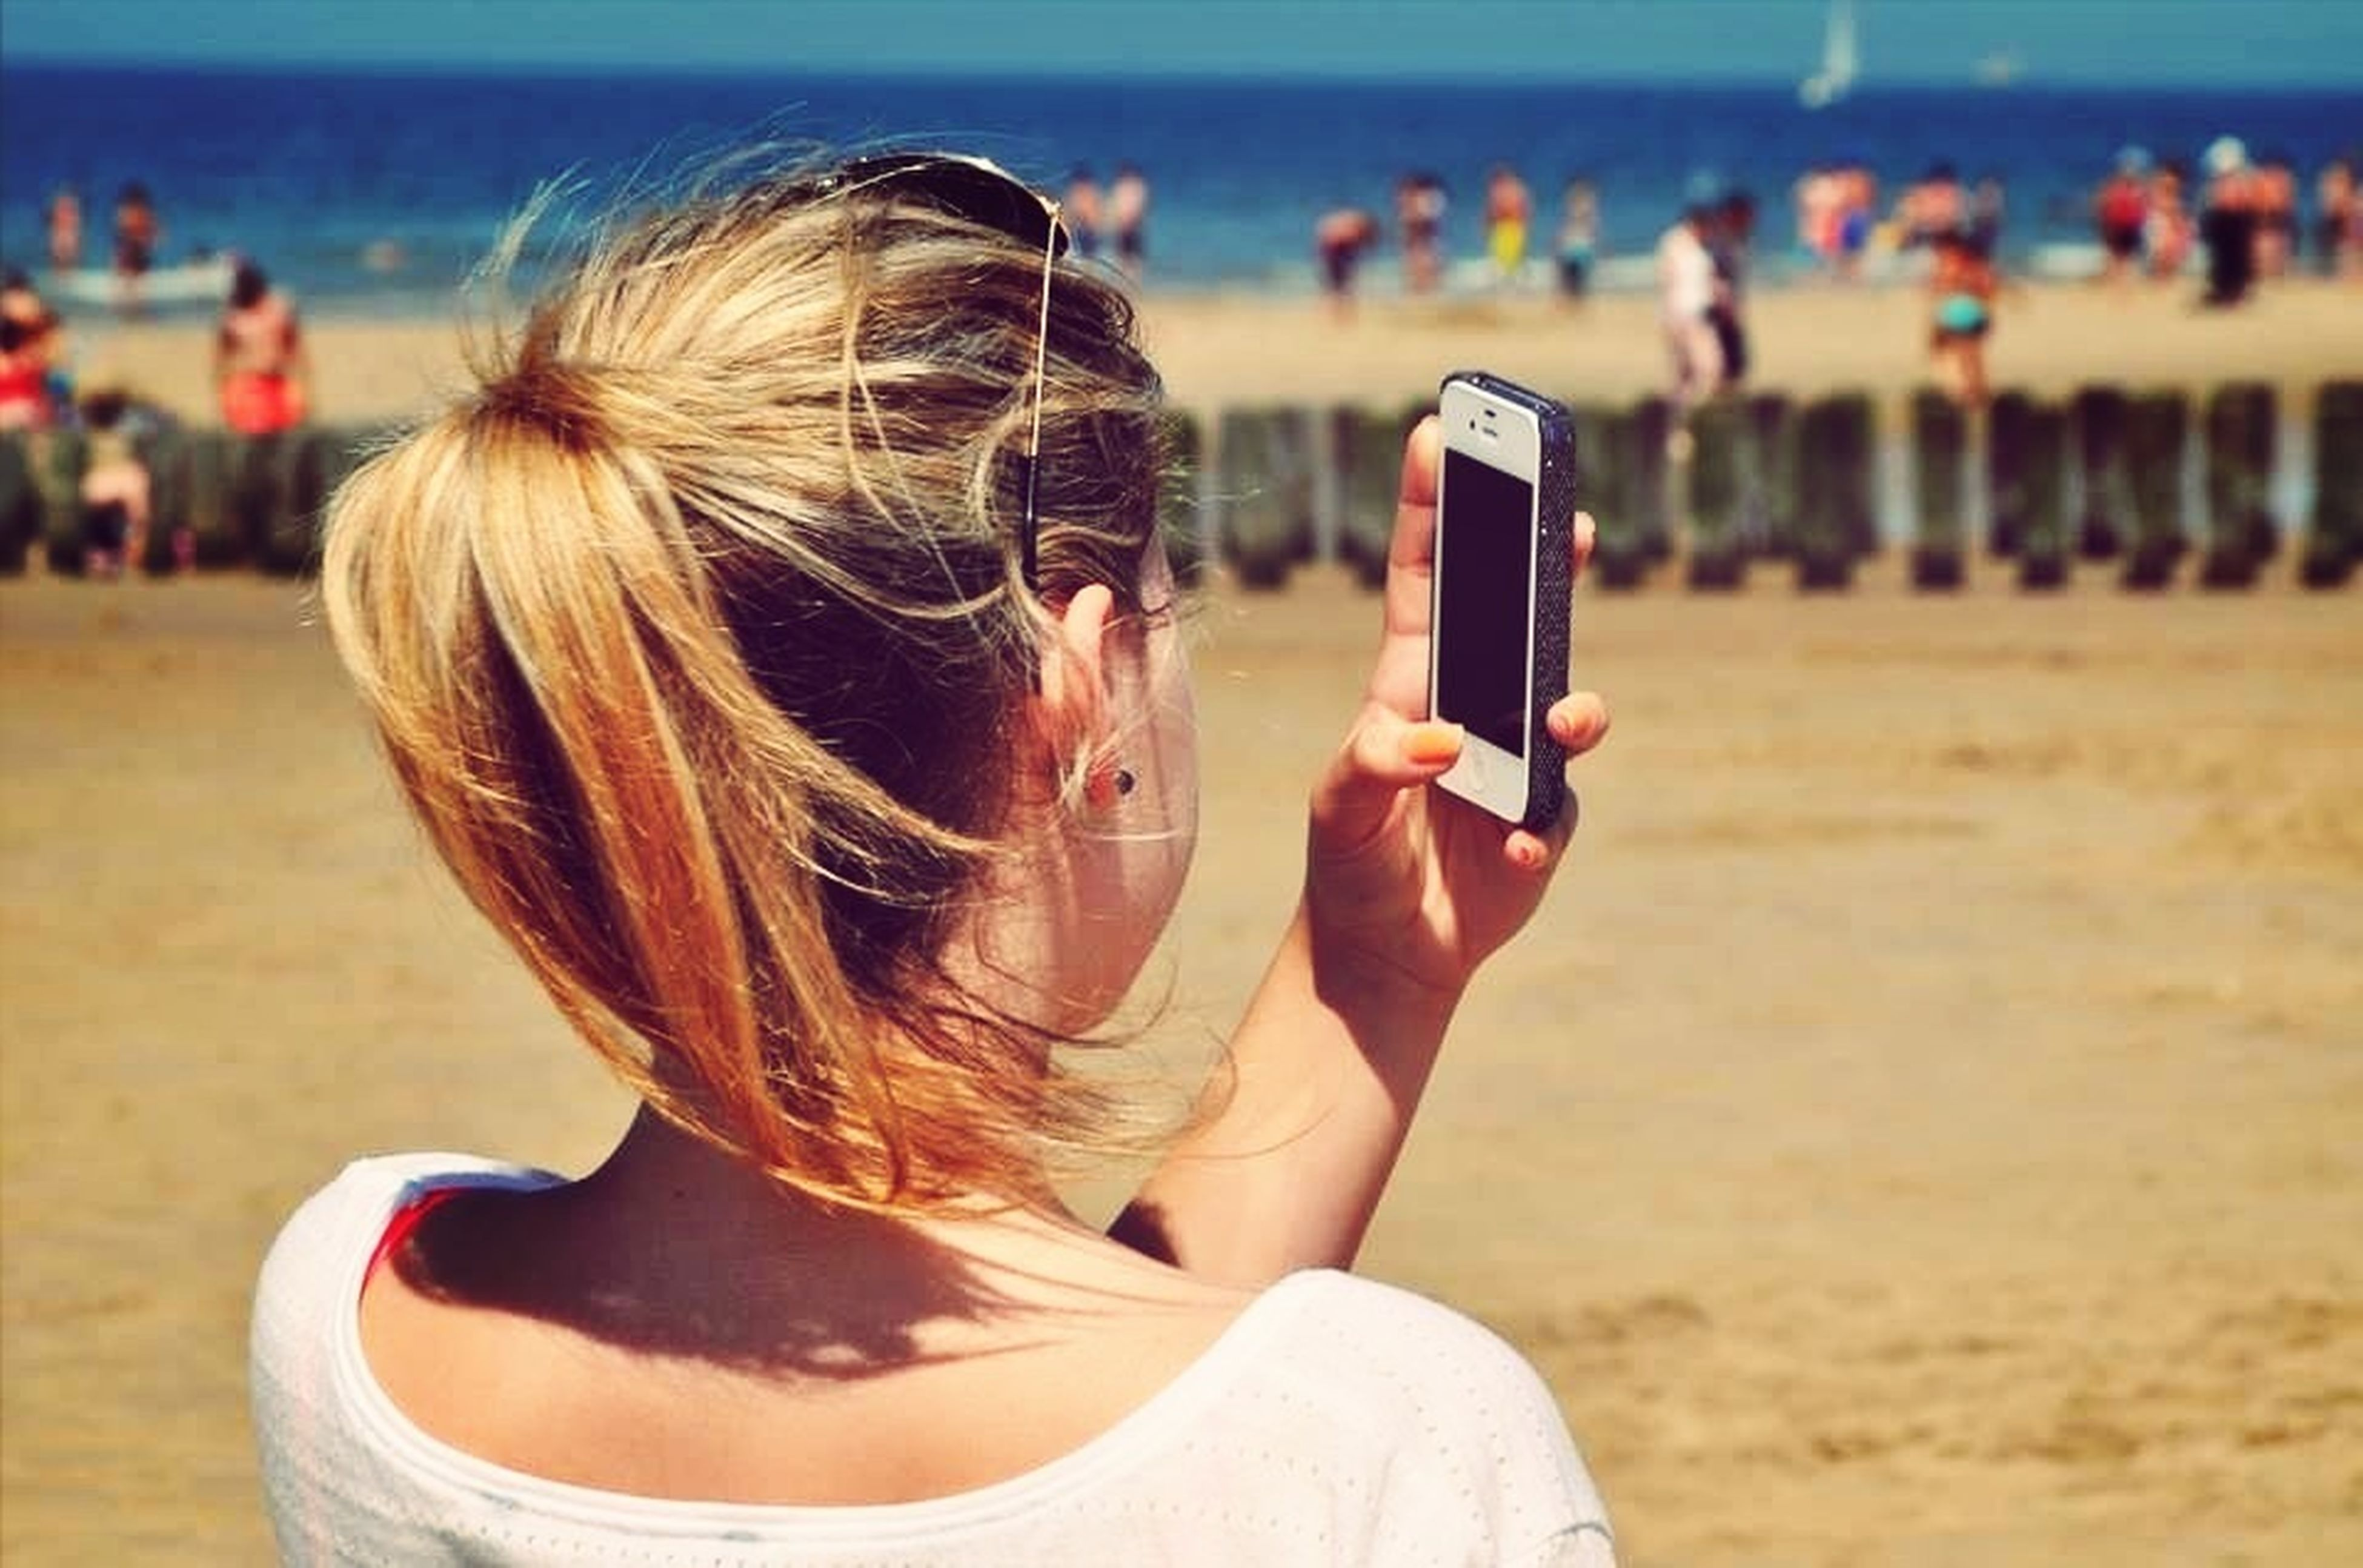 focus on foreground, beach, lifestyles, leisure activity, sea, water, sand, person, shore, headshot, rear view, blond hair, incidental people, childhood, girls, vacations, close-up